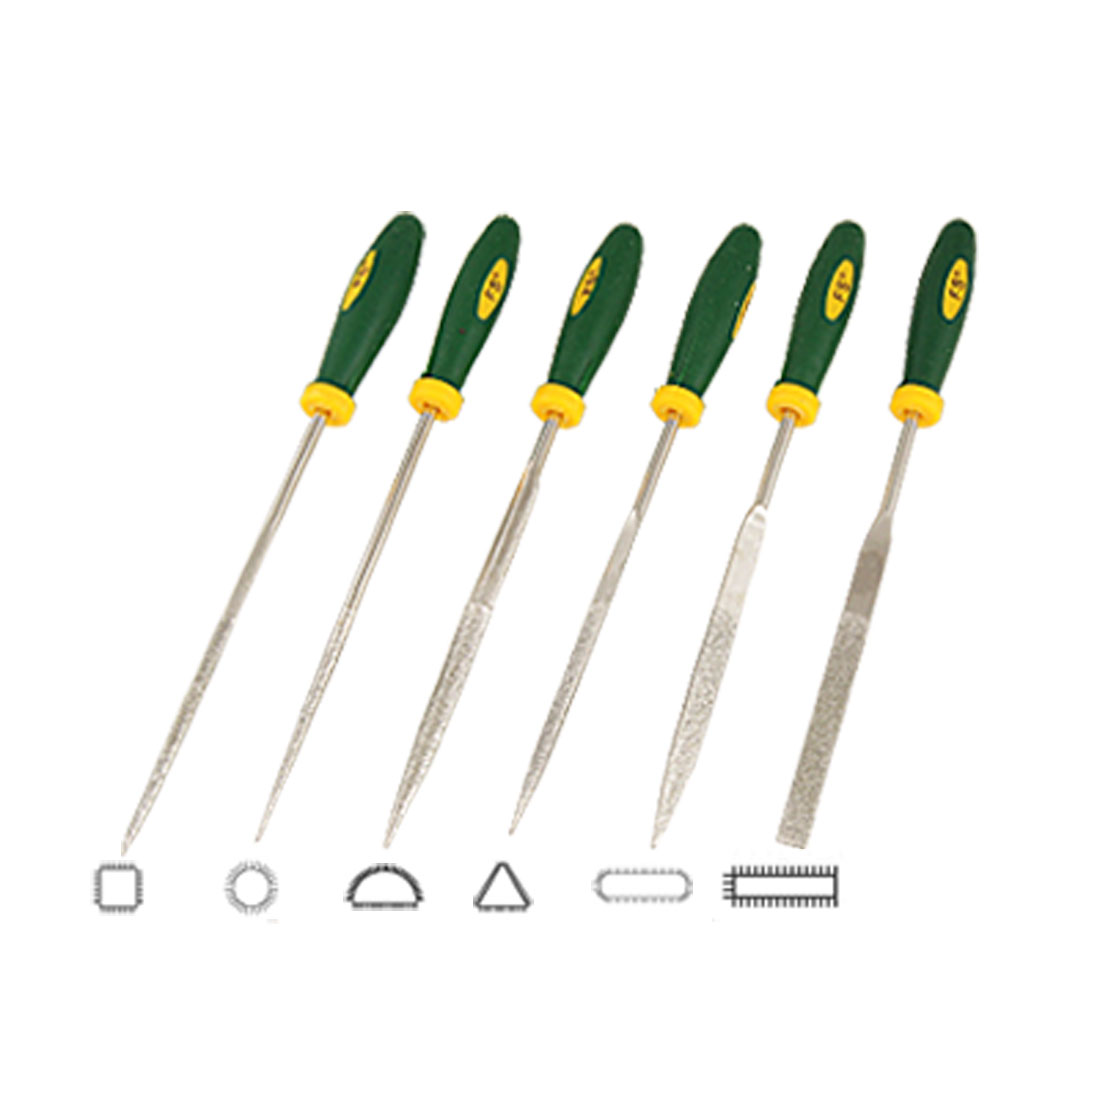 6 Pcs Diamond Rock Filing Tool Set Round Triangle Needle Files Set